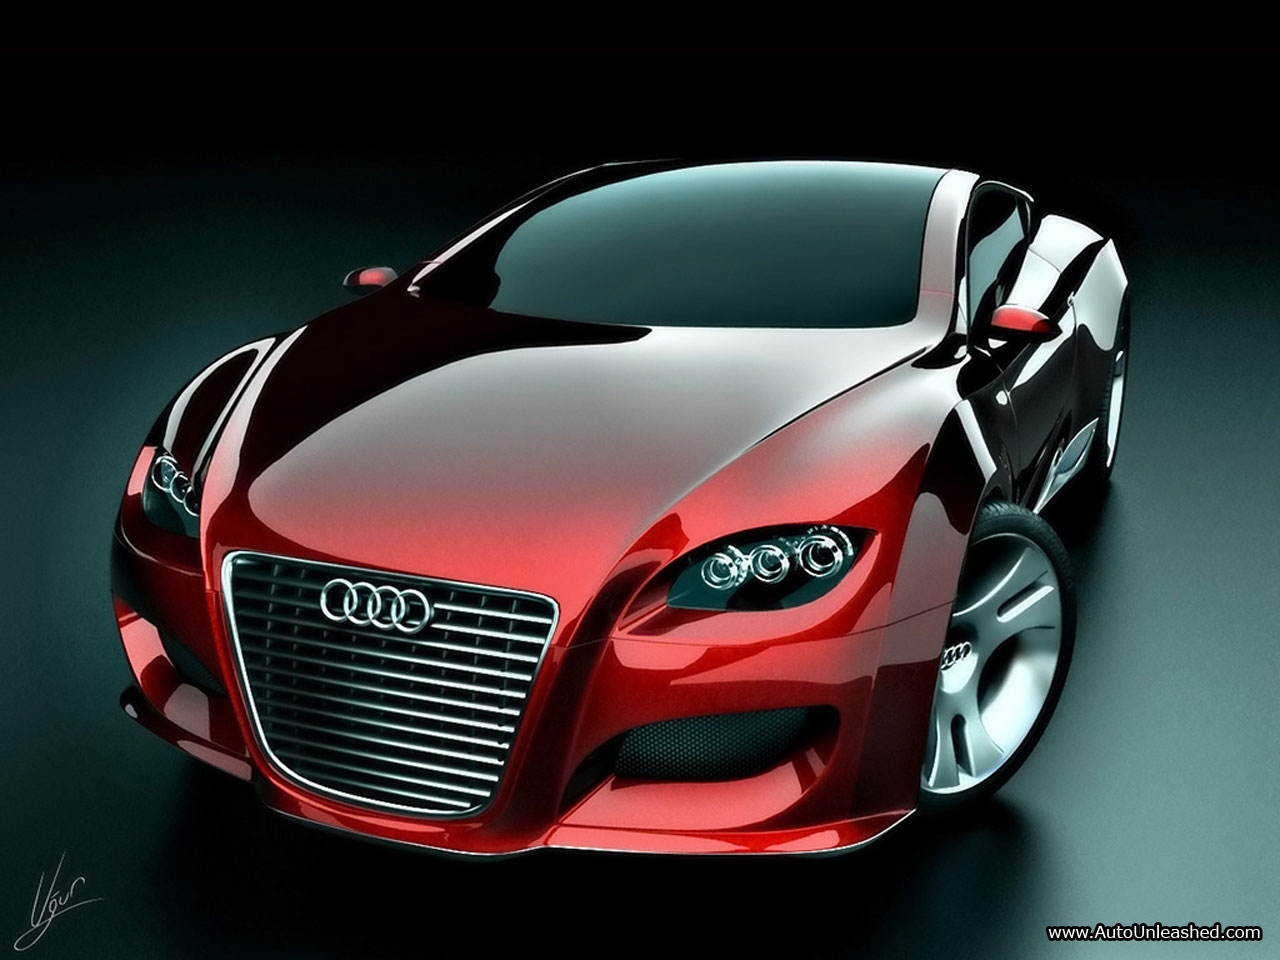 concept car wallpapers |Cars Wallpapers And Pictures car ...